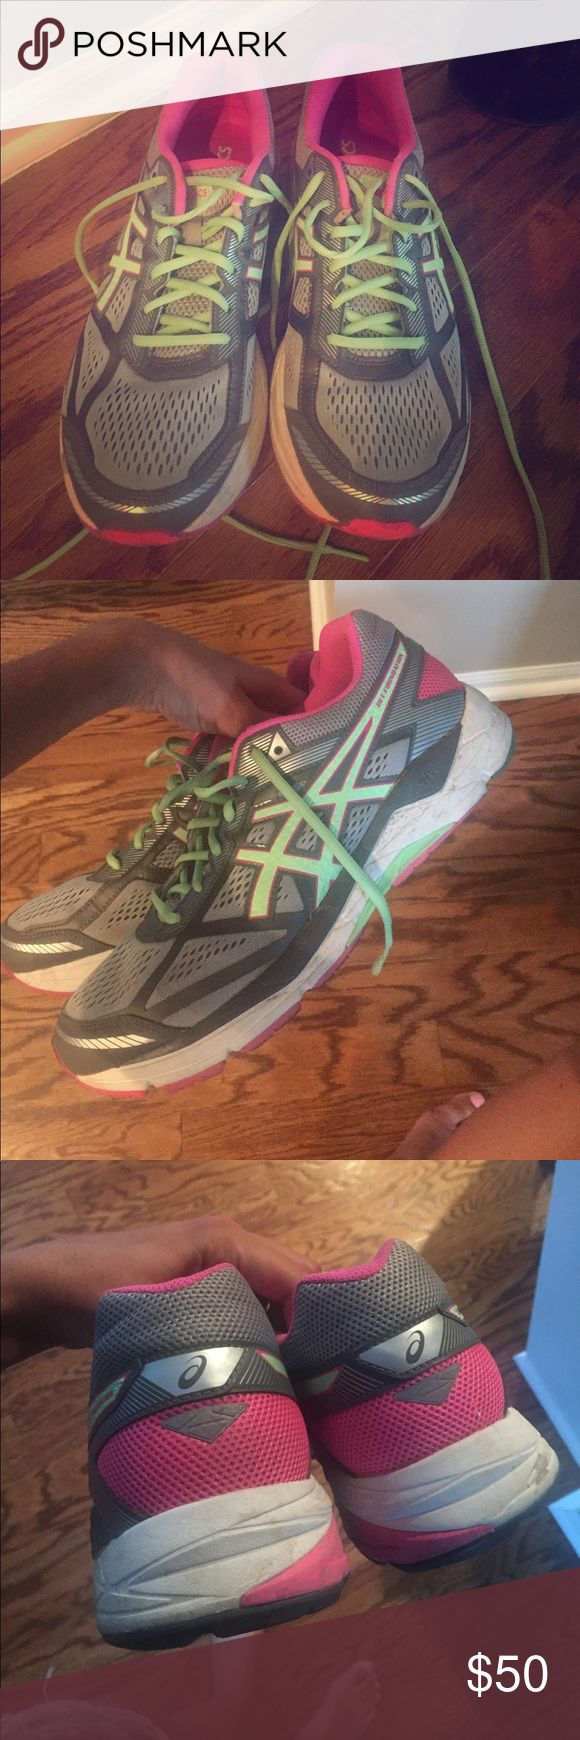 Asics gel foundation Great condition-worn for maybe a week Asics Shoes Athletic Shoes